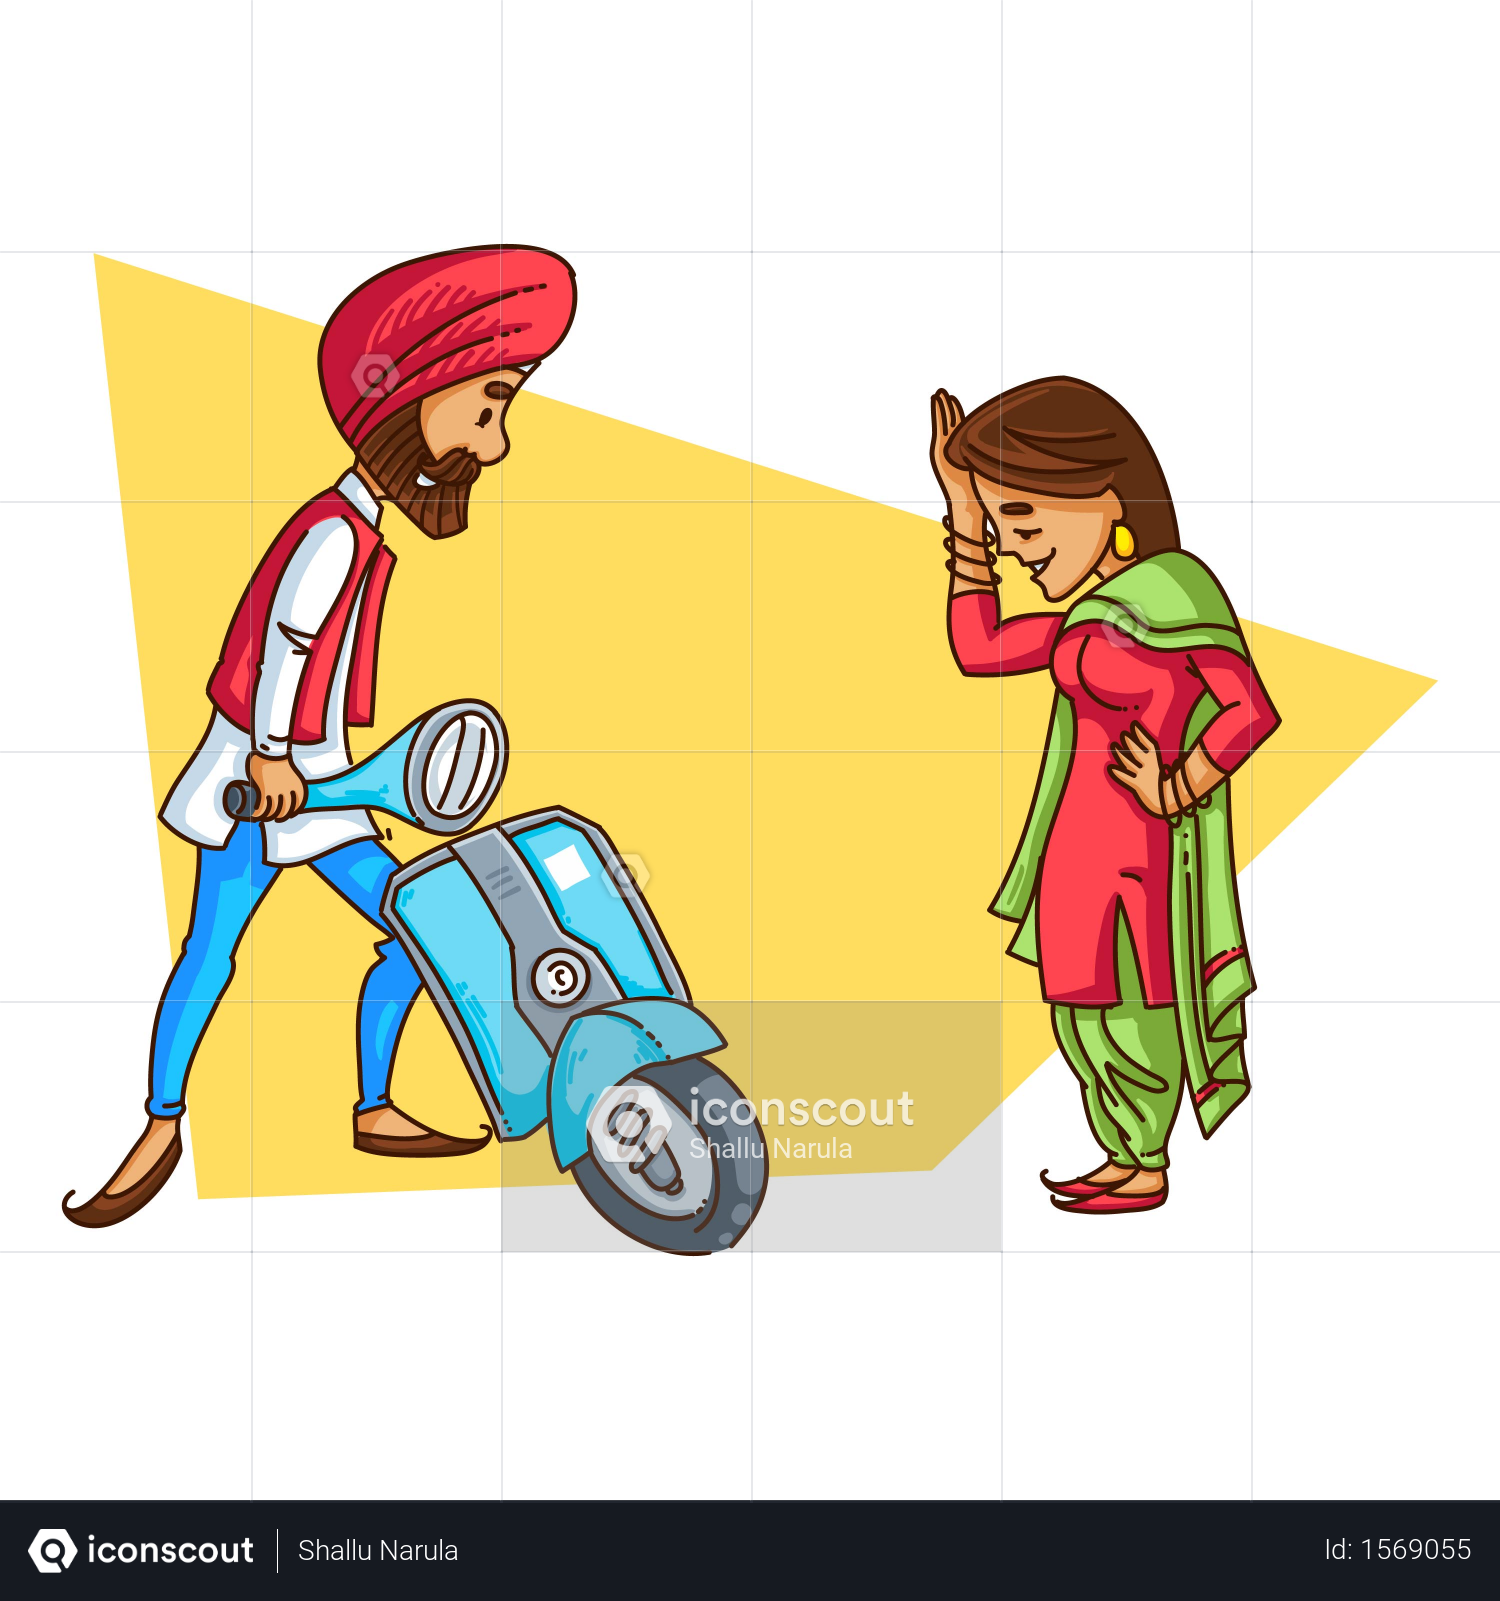 Premium Punjabi Sardar Repairing His Scooter While Traveling With His Wife Illustration Download In Png Vector Format Illustration People Illustration Truck Art